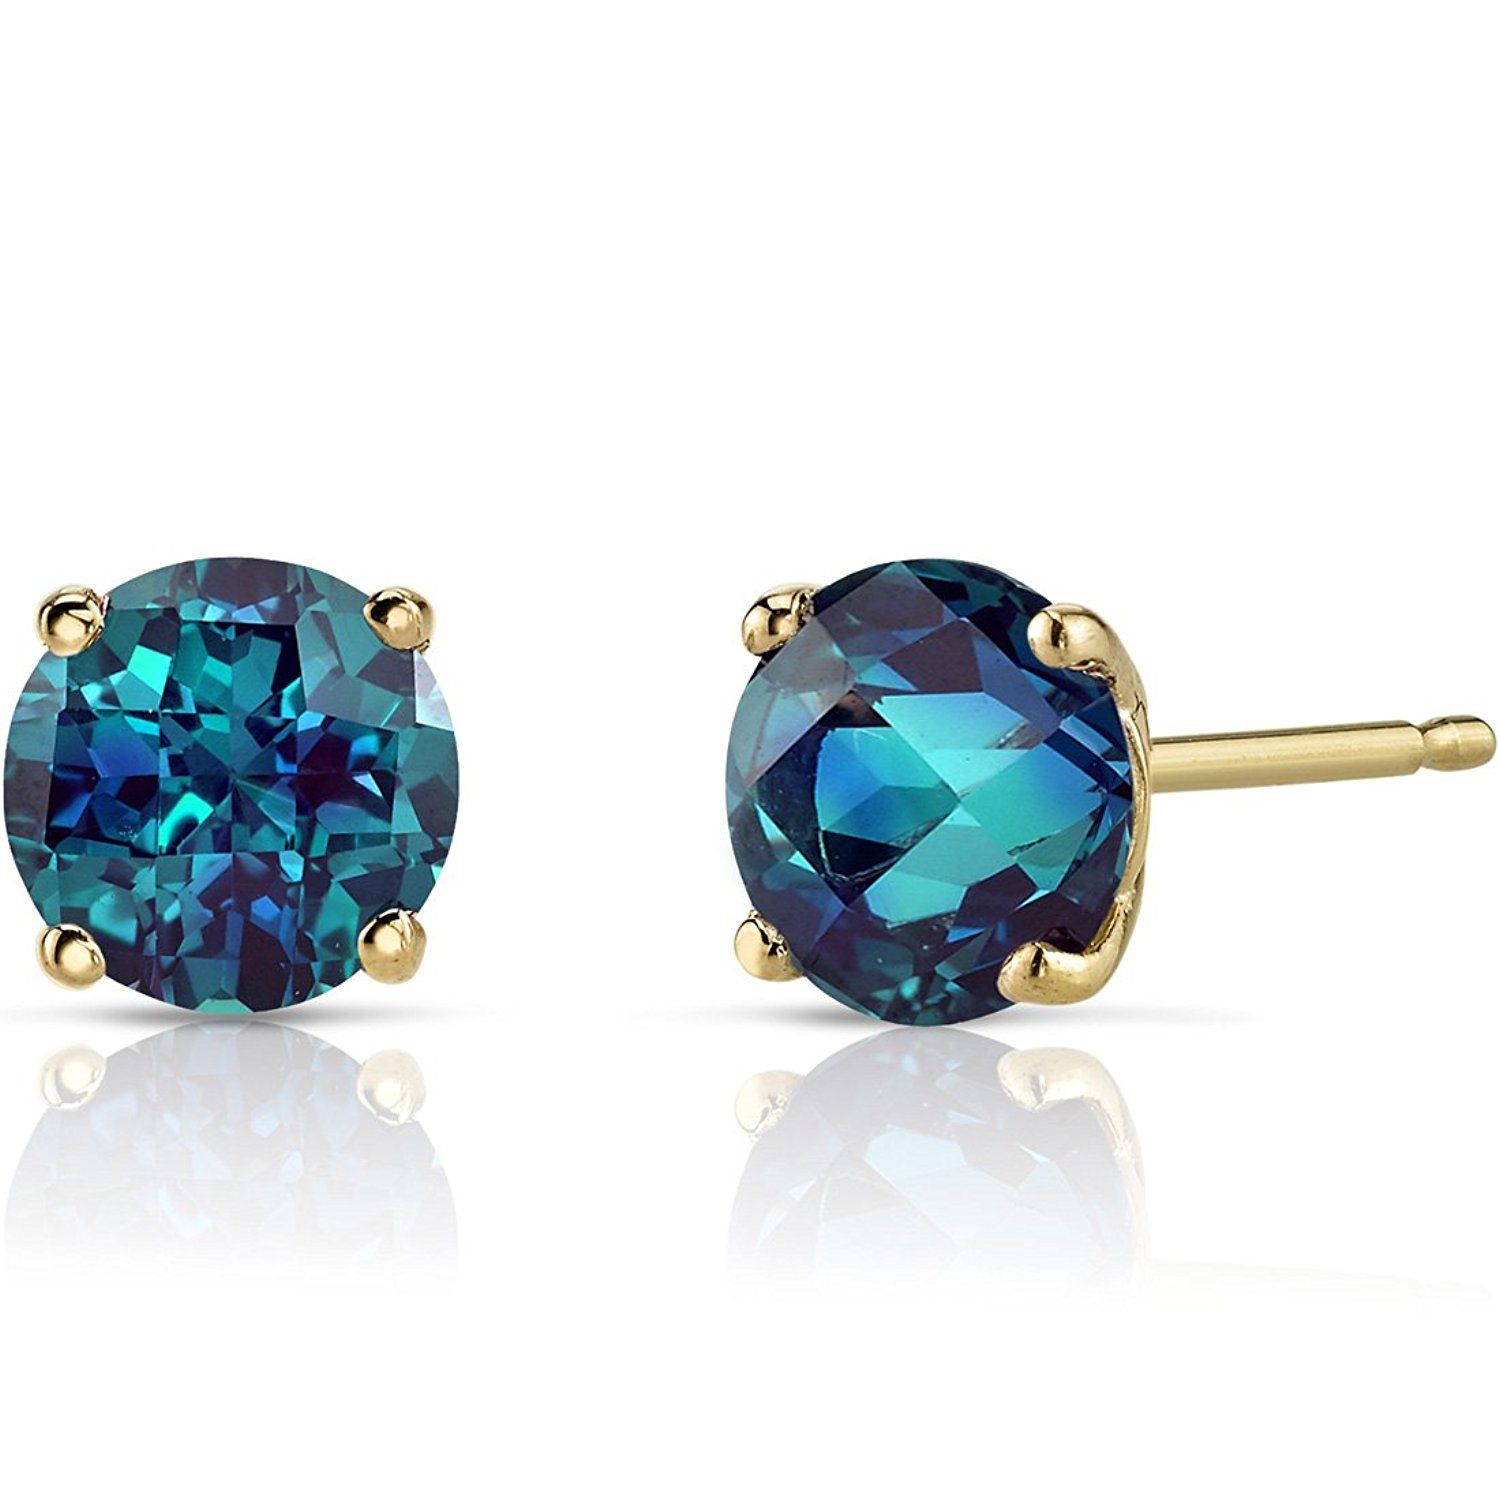 silver middletons sapphire natural jewelrypalace shop alexandrite kate diana created s sterling oval middleton stud earrings william jewellery princess